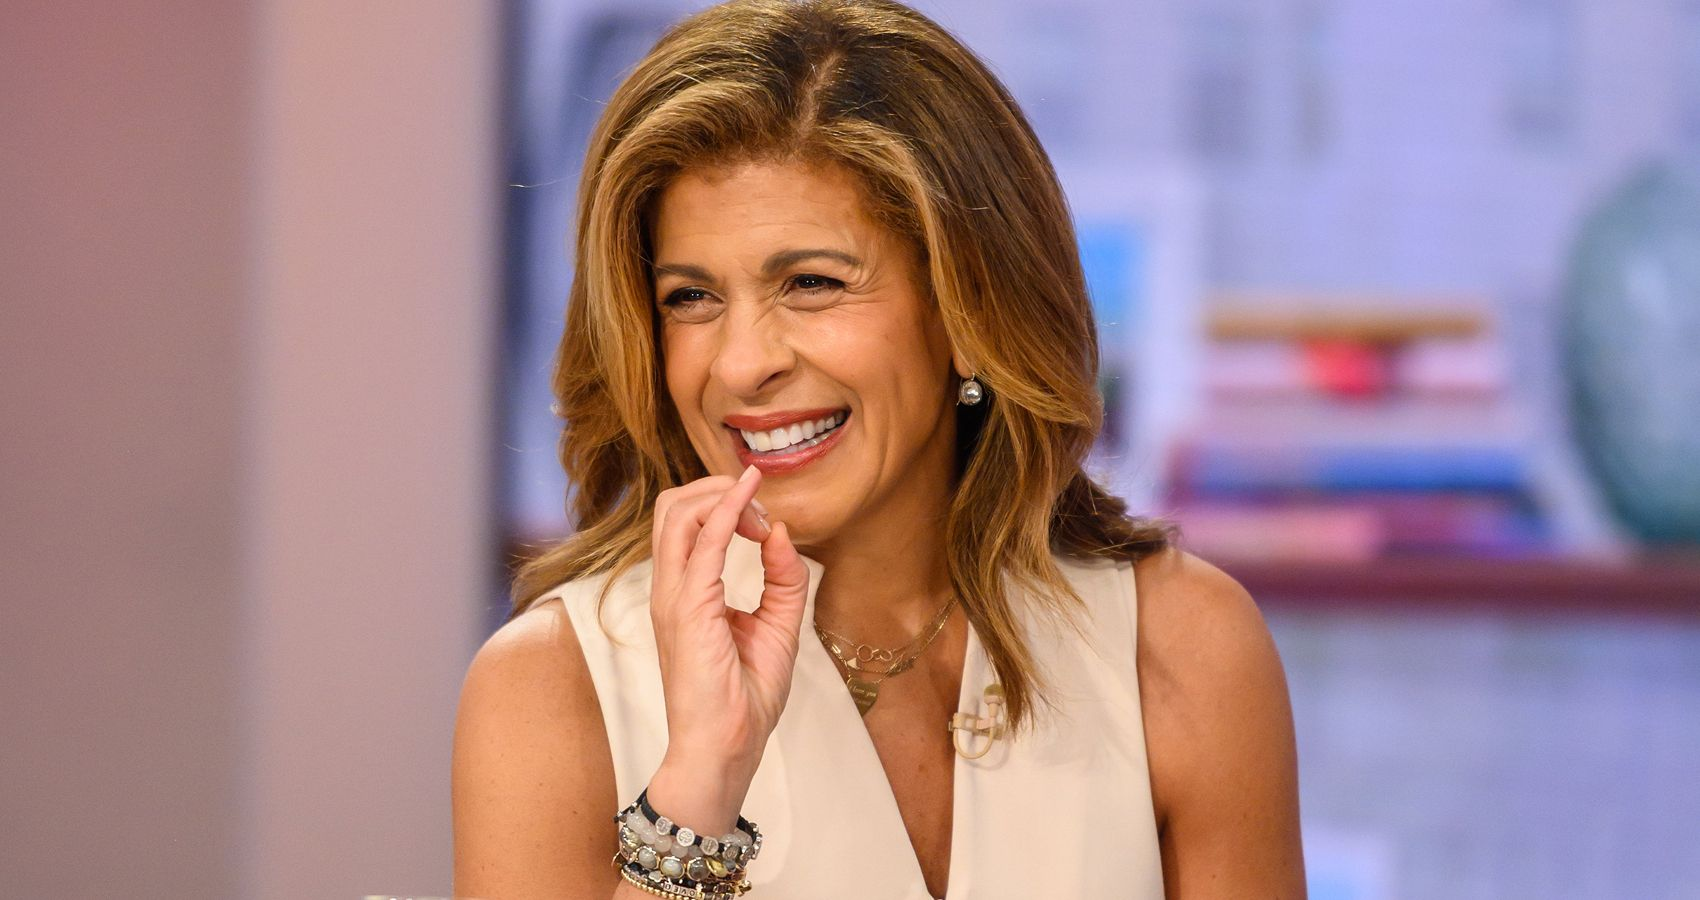 Hoda Kotb Is Ready & Waiting To Adopt Another Child | Moms.com